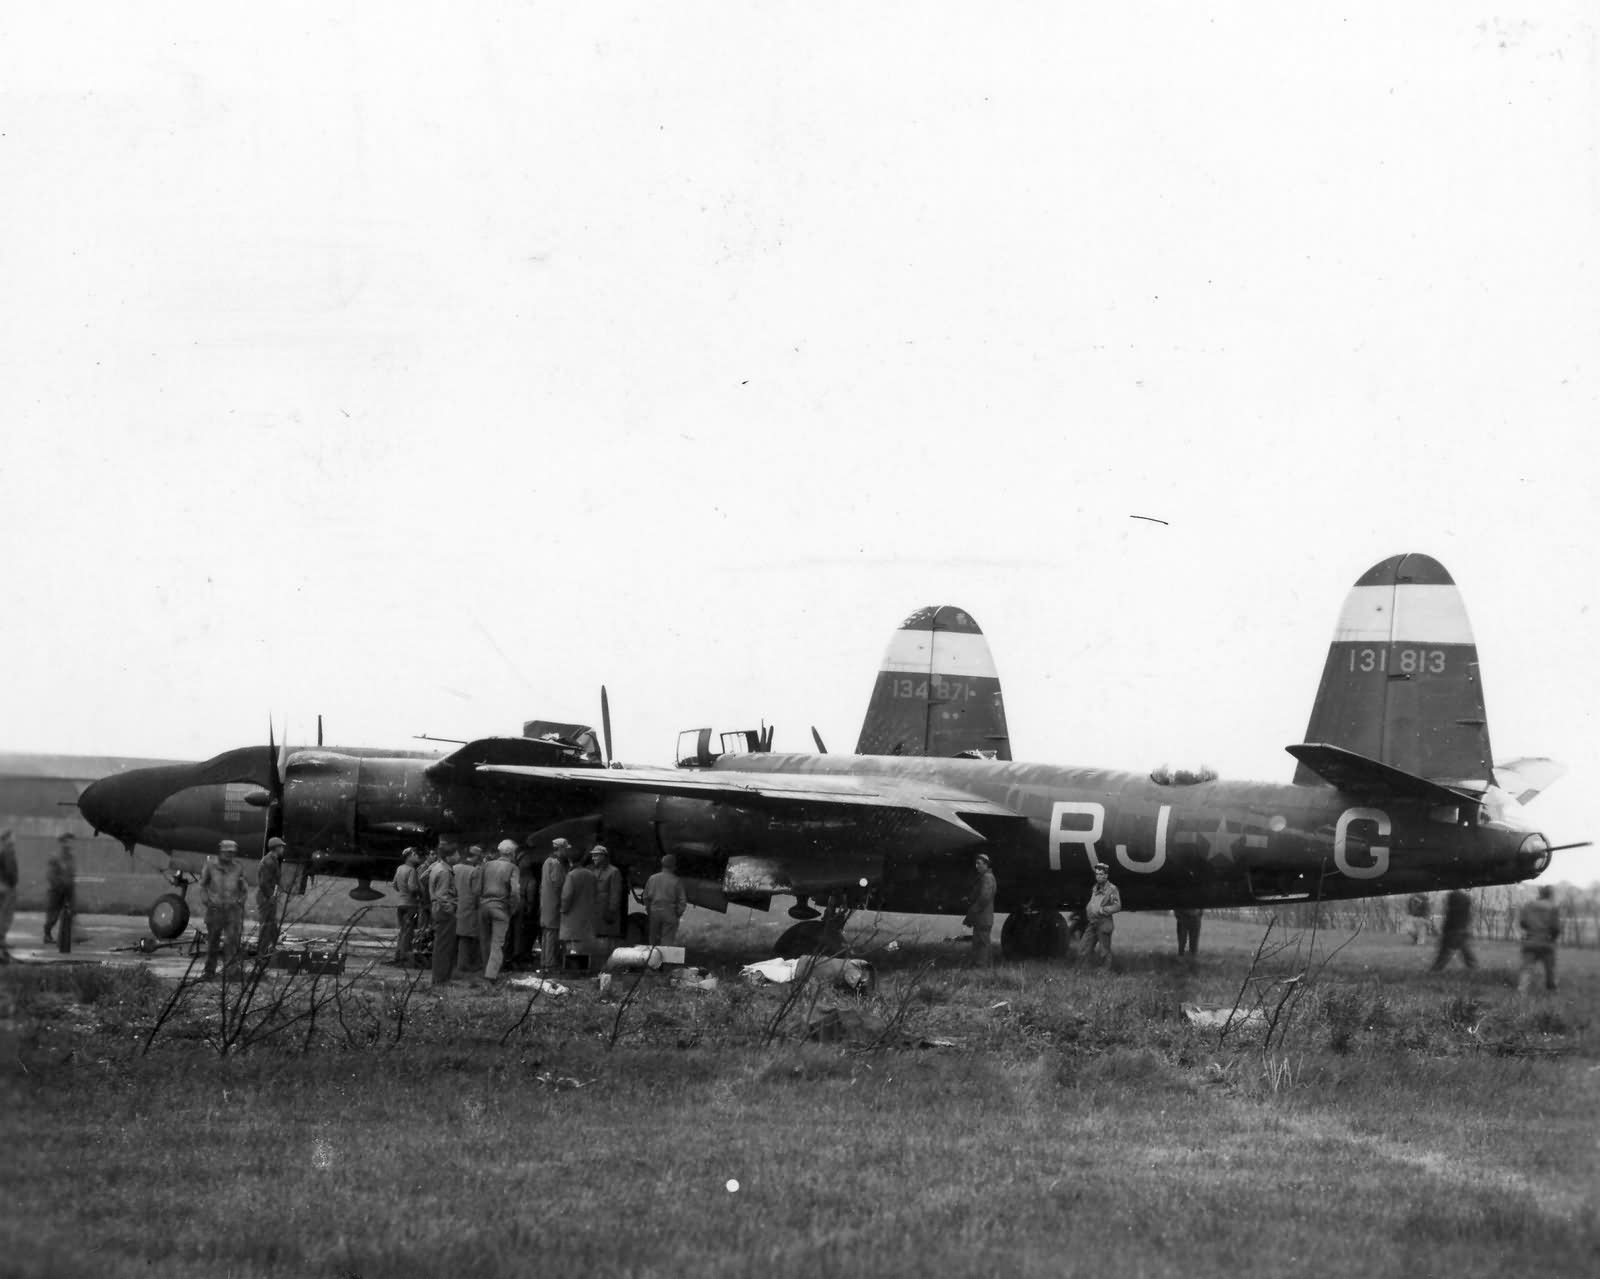 USAAF 41 31813 B 26B Marauder 323BG454BS RJG Half and Half accident France 01